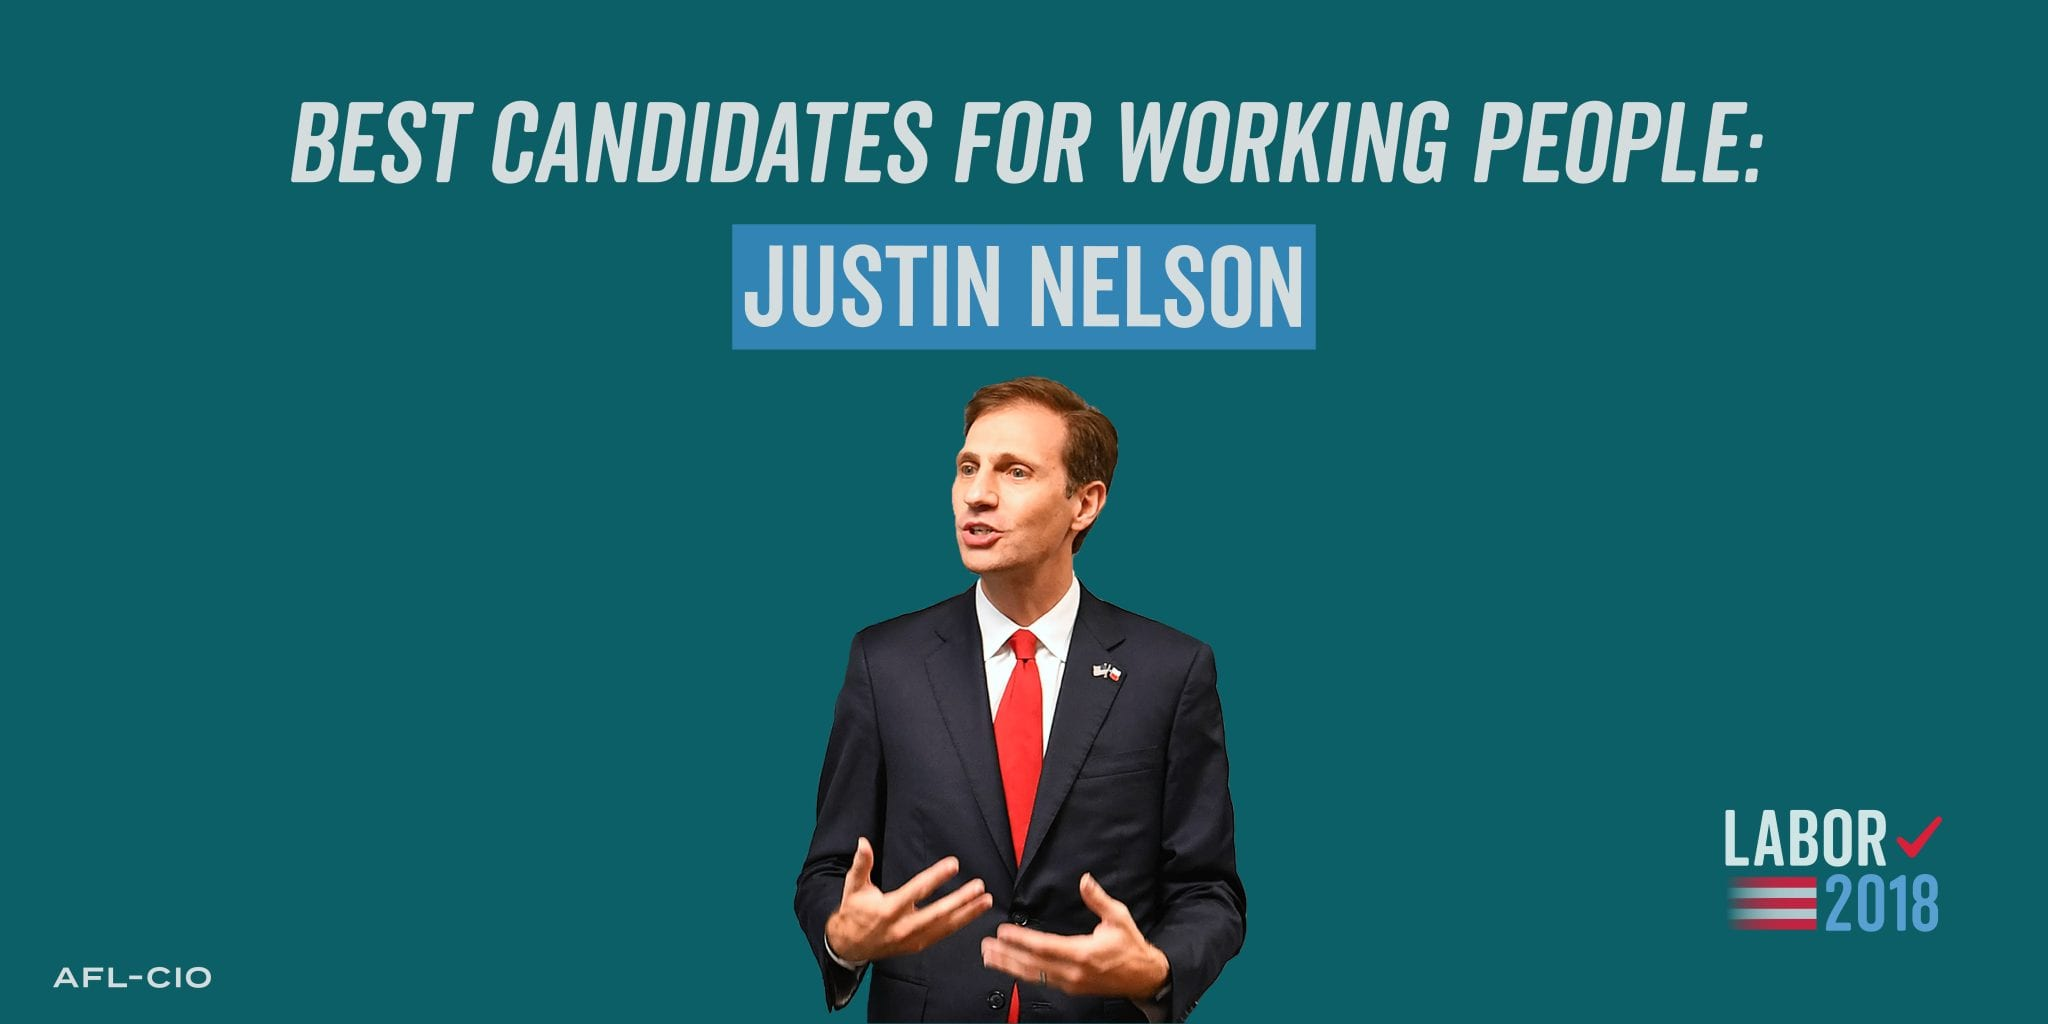 Justin Nelson